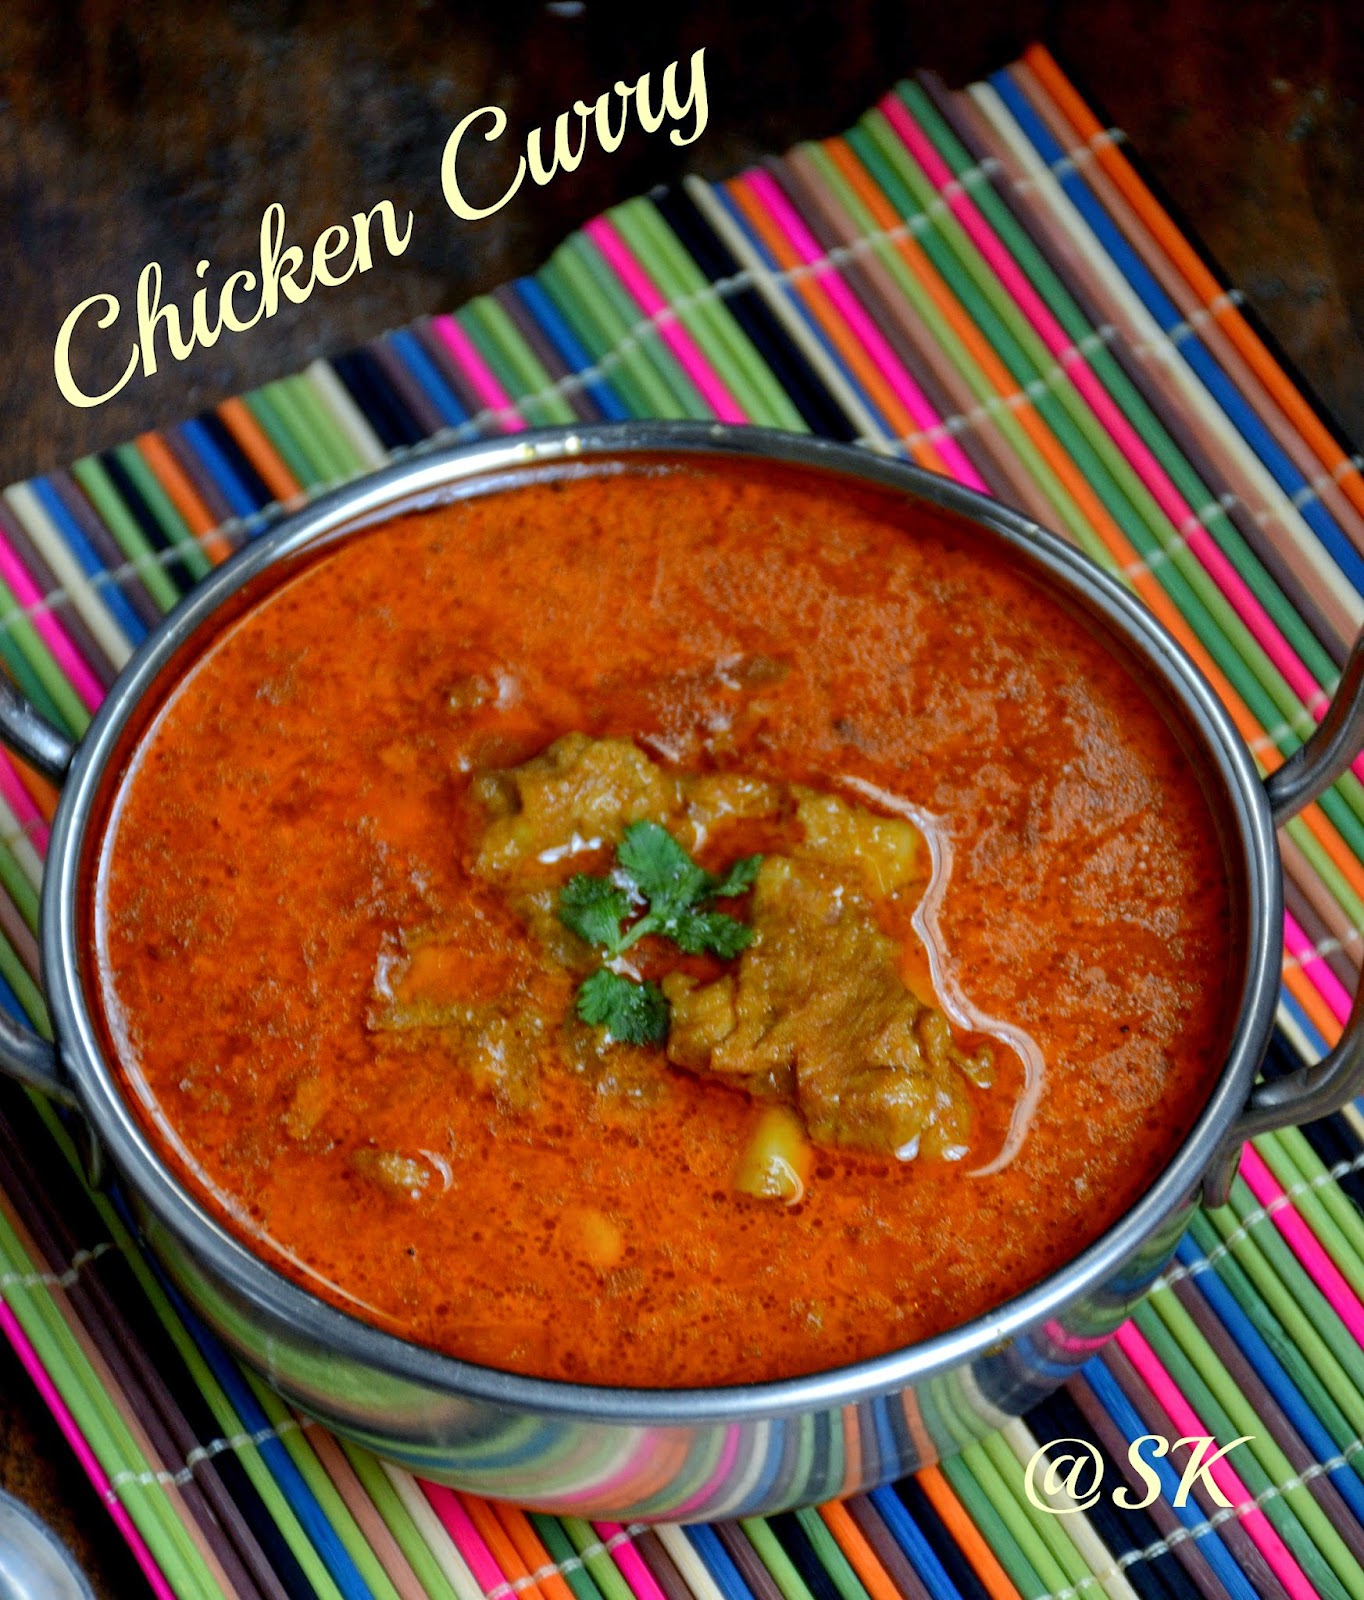 chennai special chicken curry - quick  pressure cooker chicken curry - bachelor's recipe